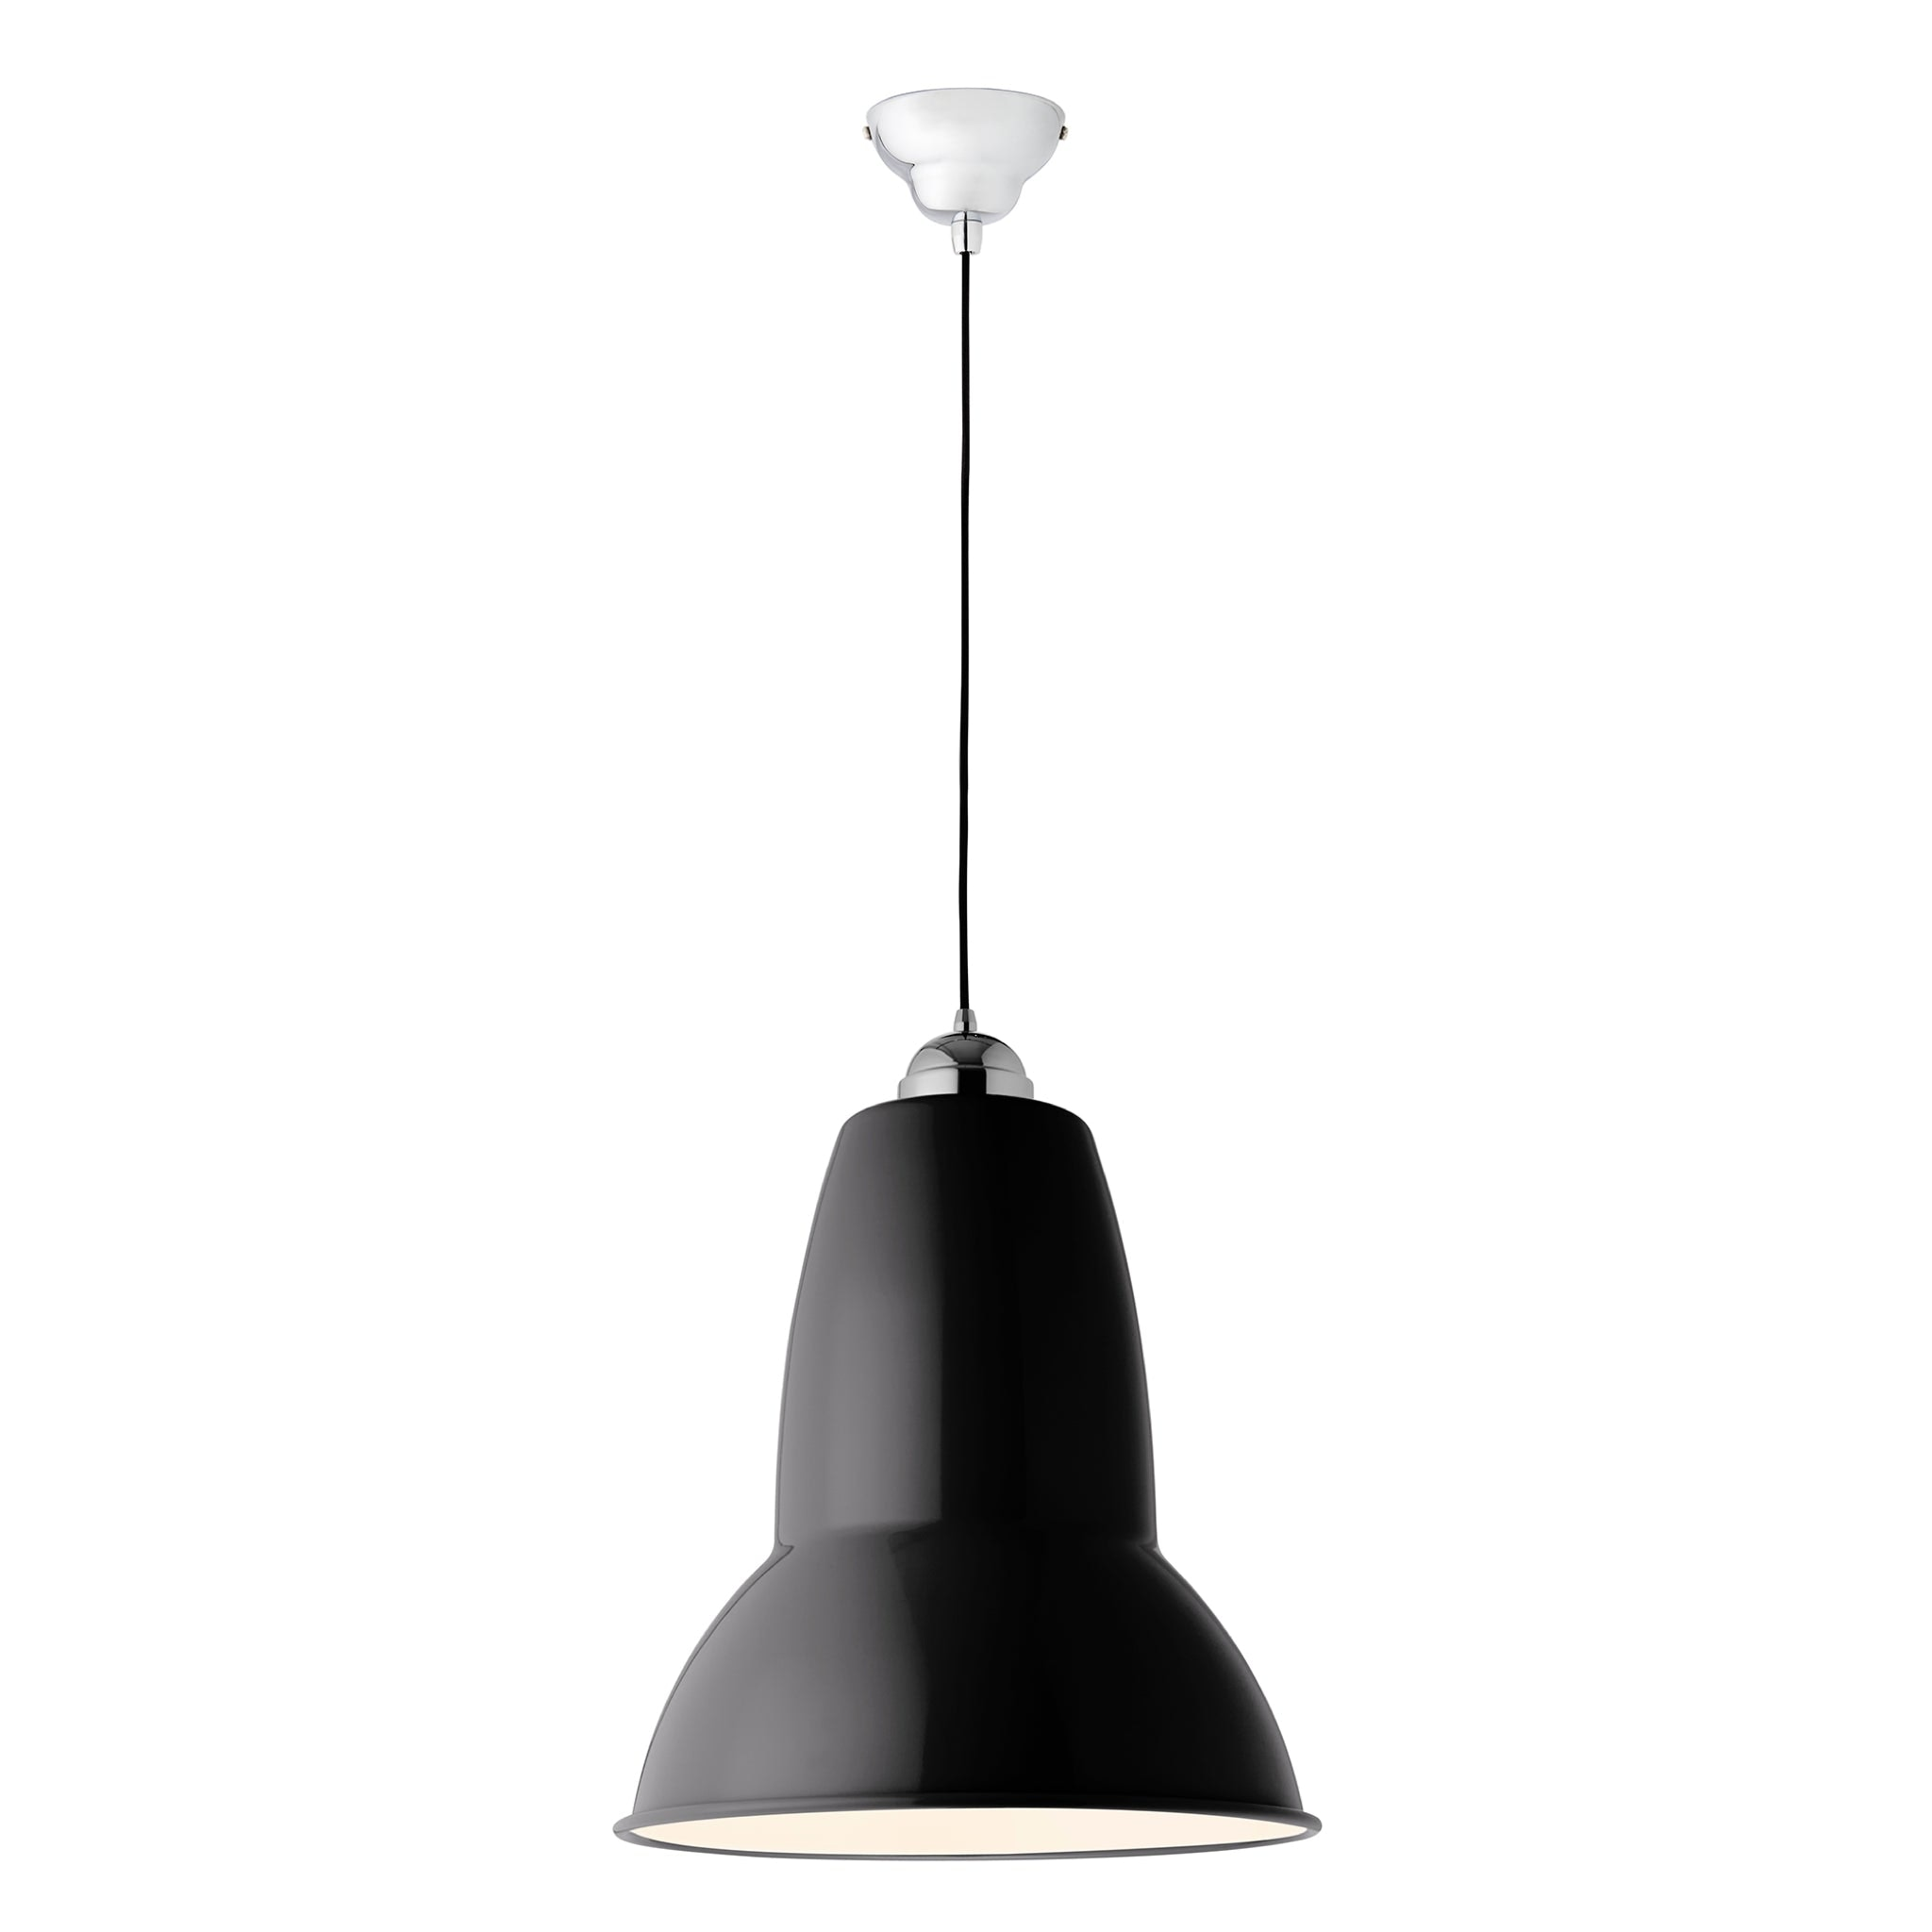 Original 1227 Giant Pendant by Anglepoise